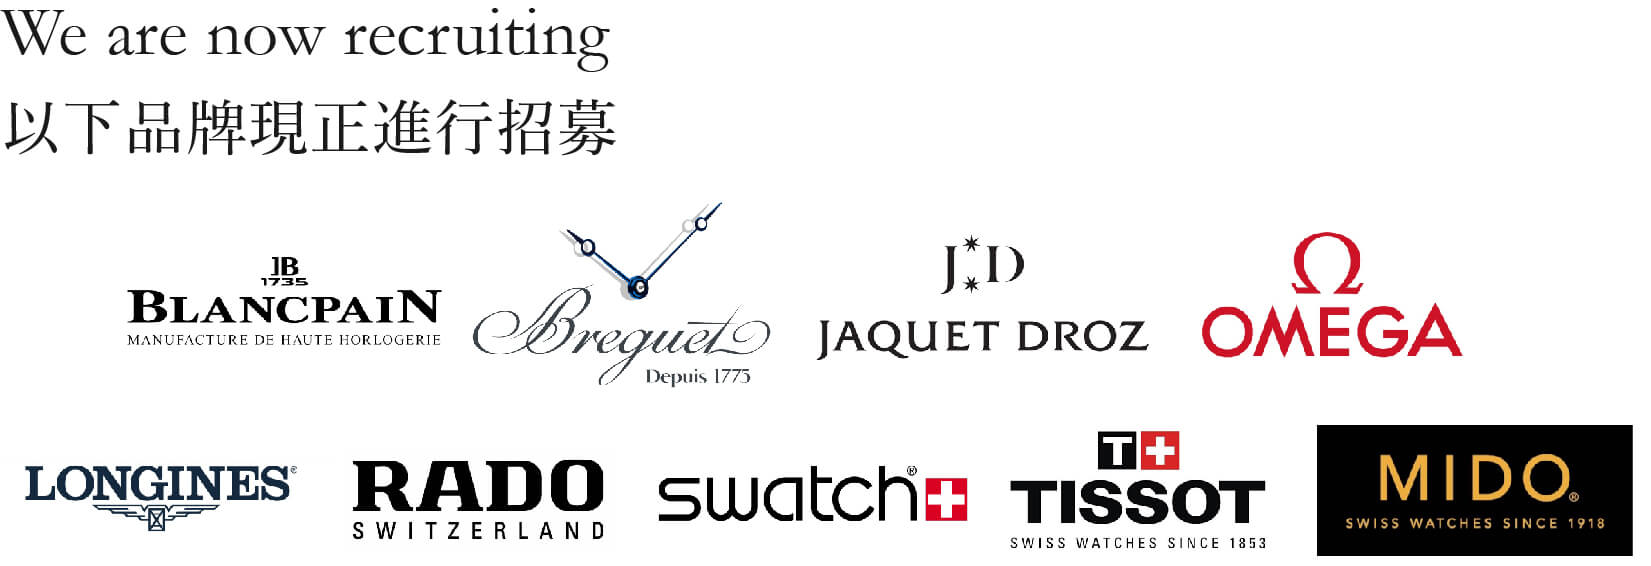 Swatch Group brands jobscall.me macau-01.jpg